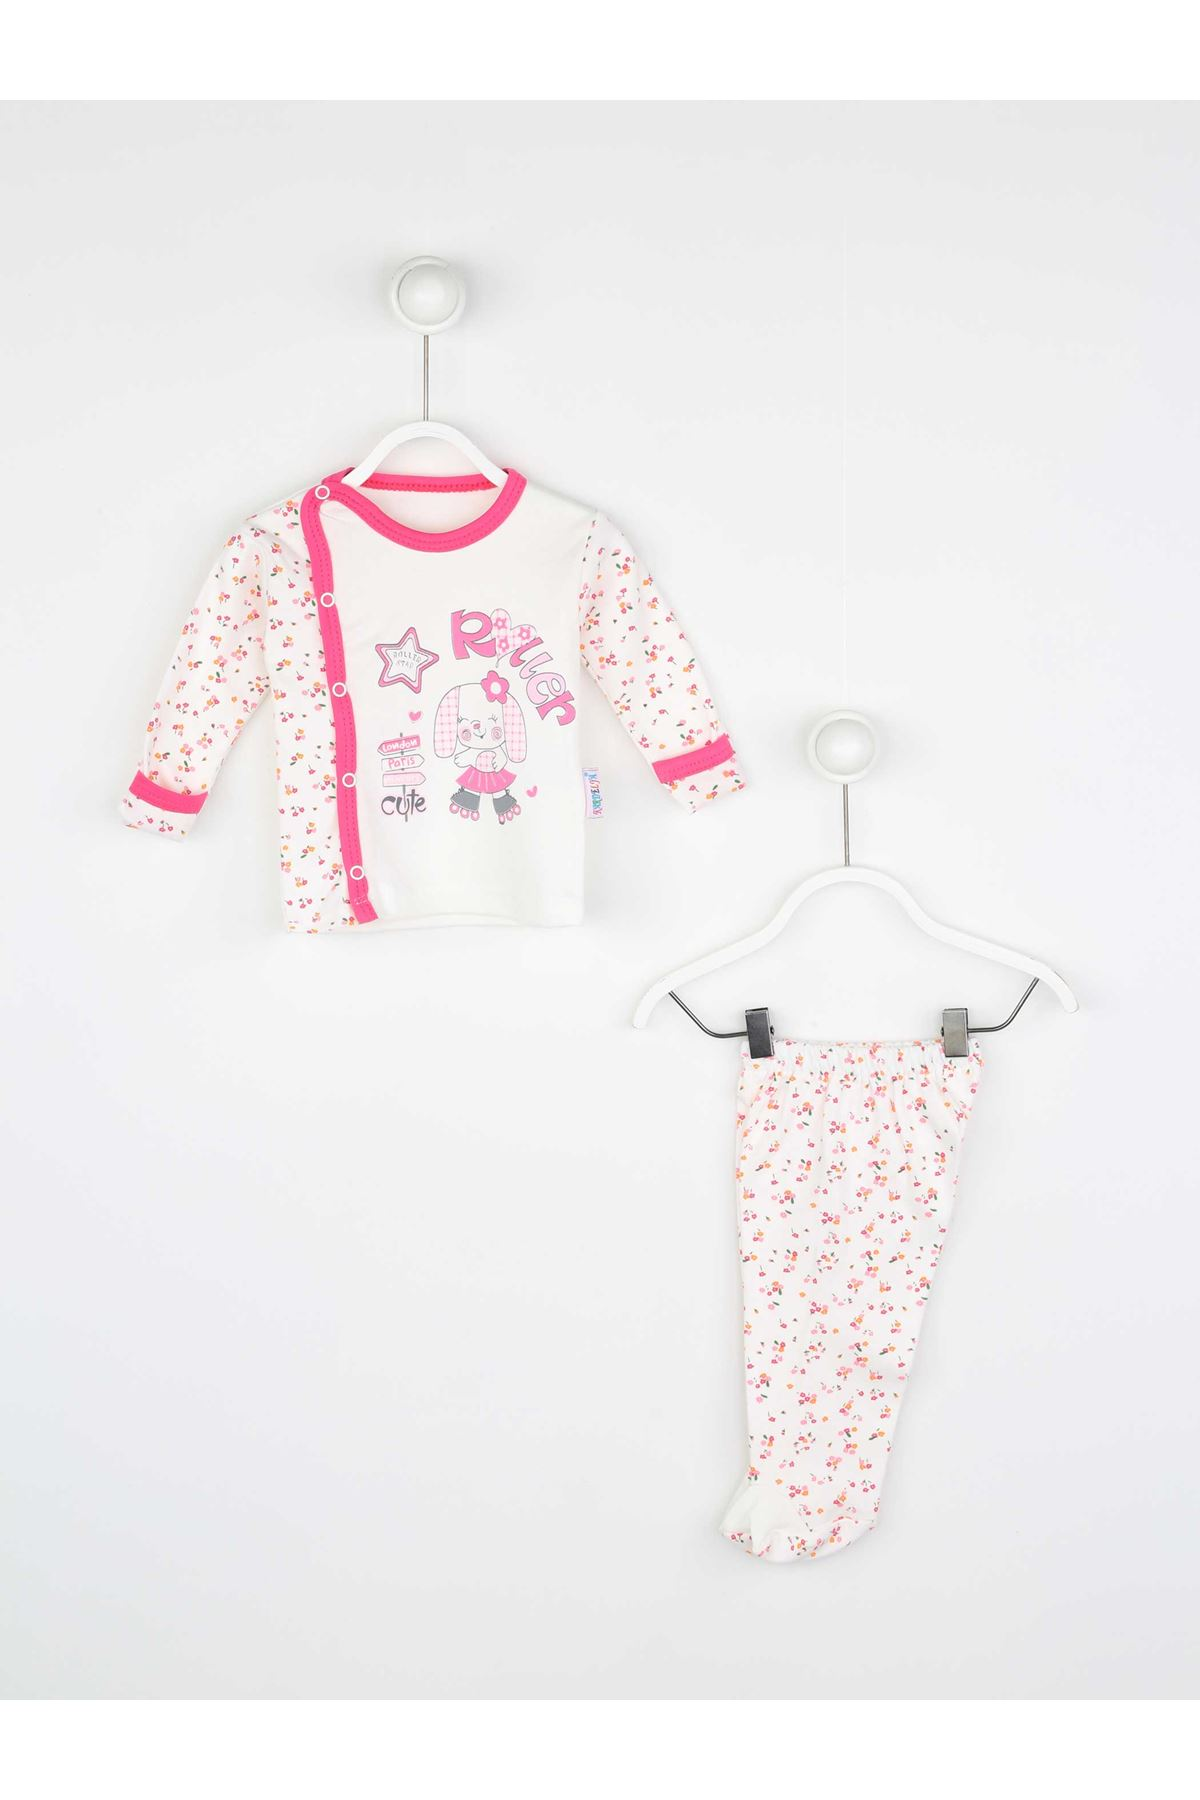 Fuchsia Baby Girl Daily 2 Piece Suit Set Cotton Daily Seasonal Casual Wear Girls Babies Suit Outfit Models